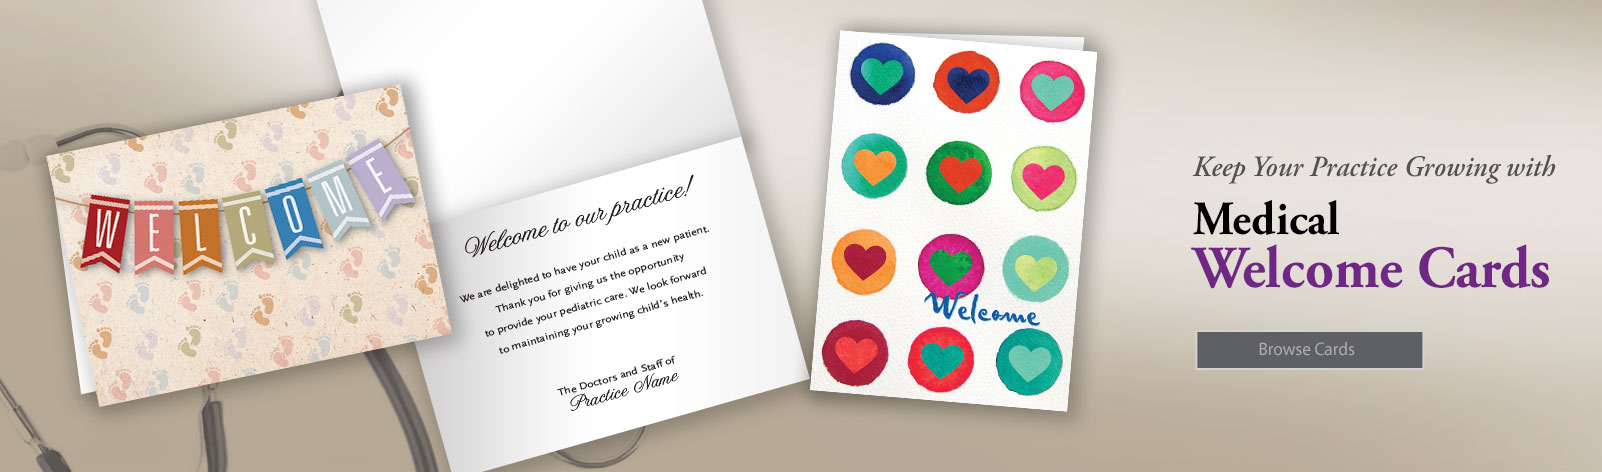 Medical Welcome Cards